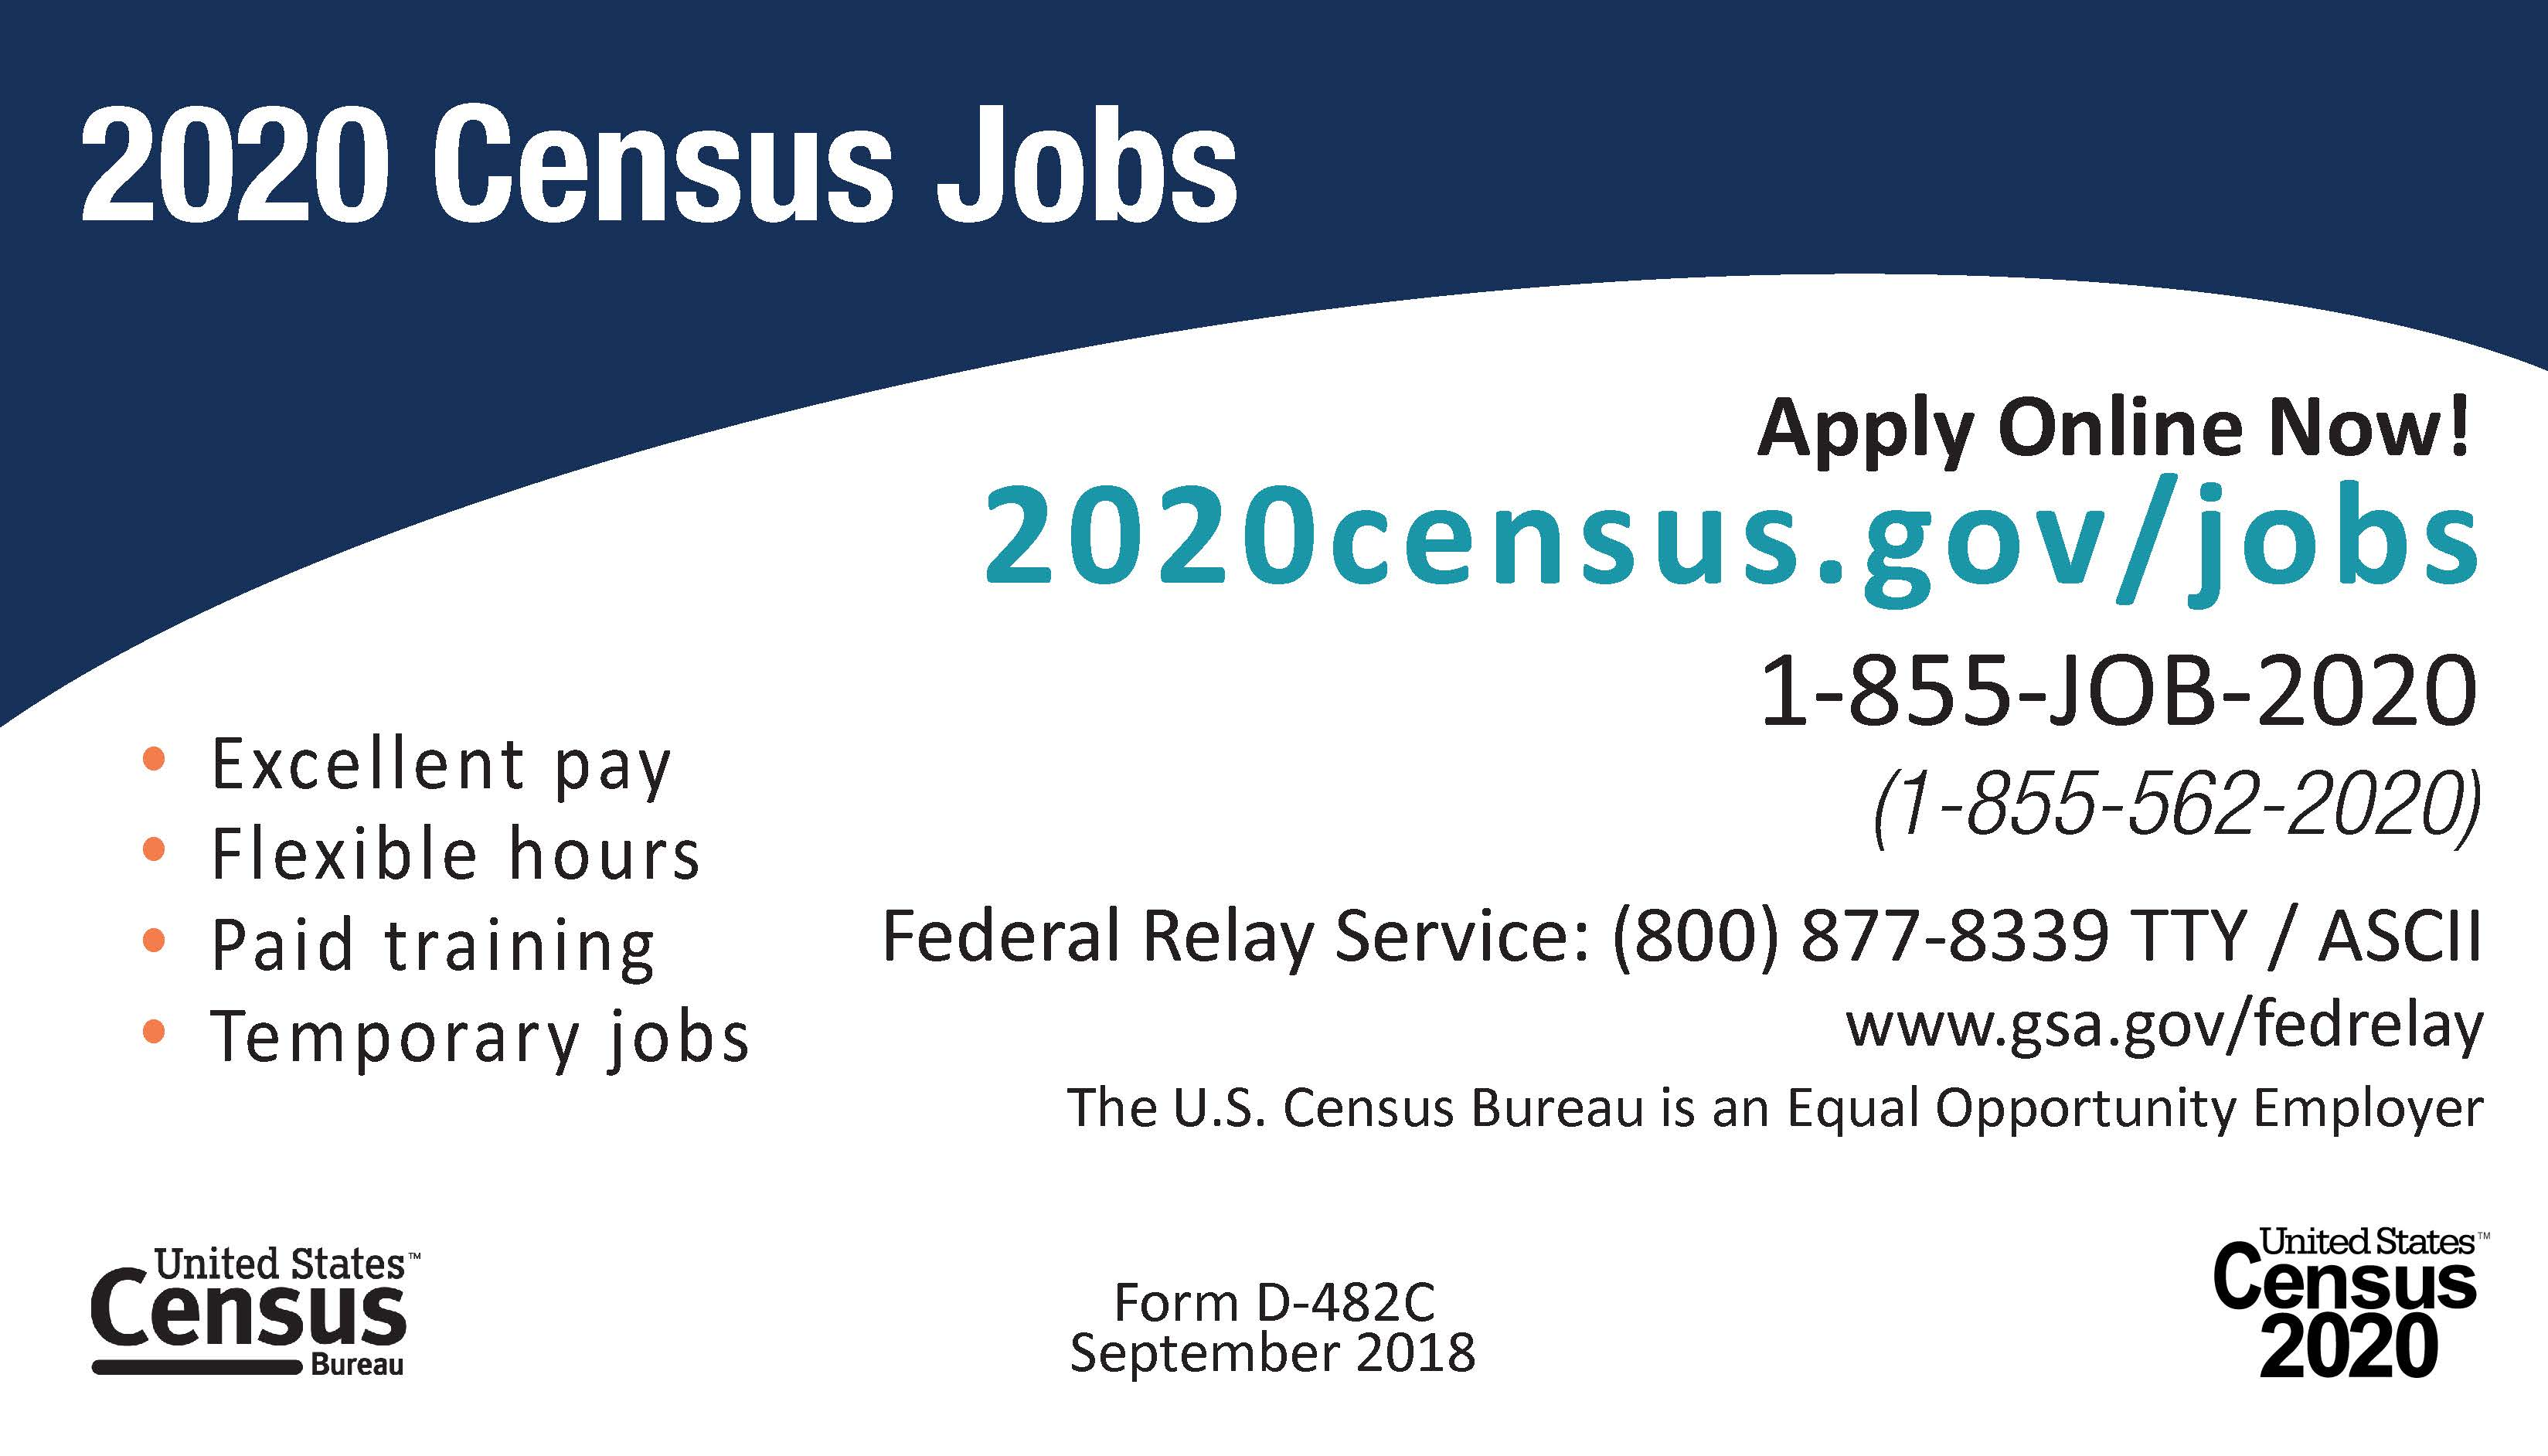 2020 Census Jobs Dover Township